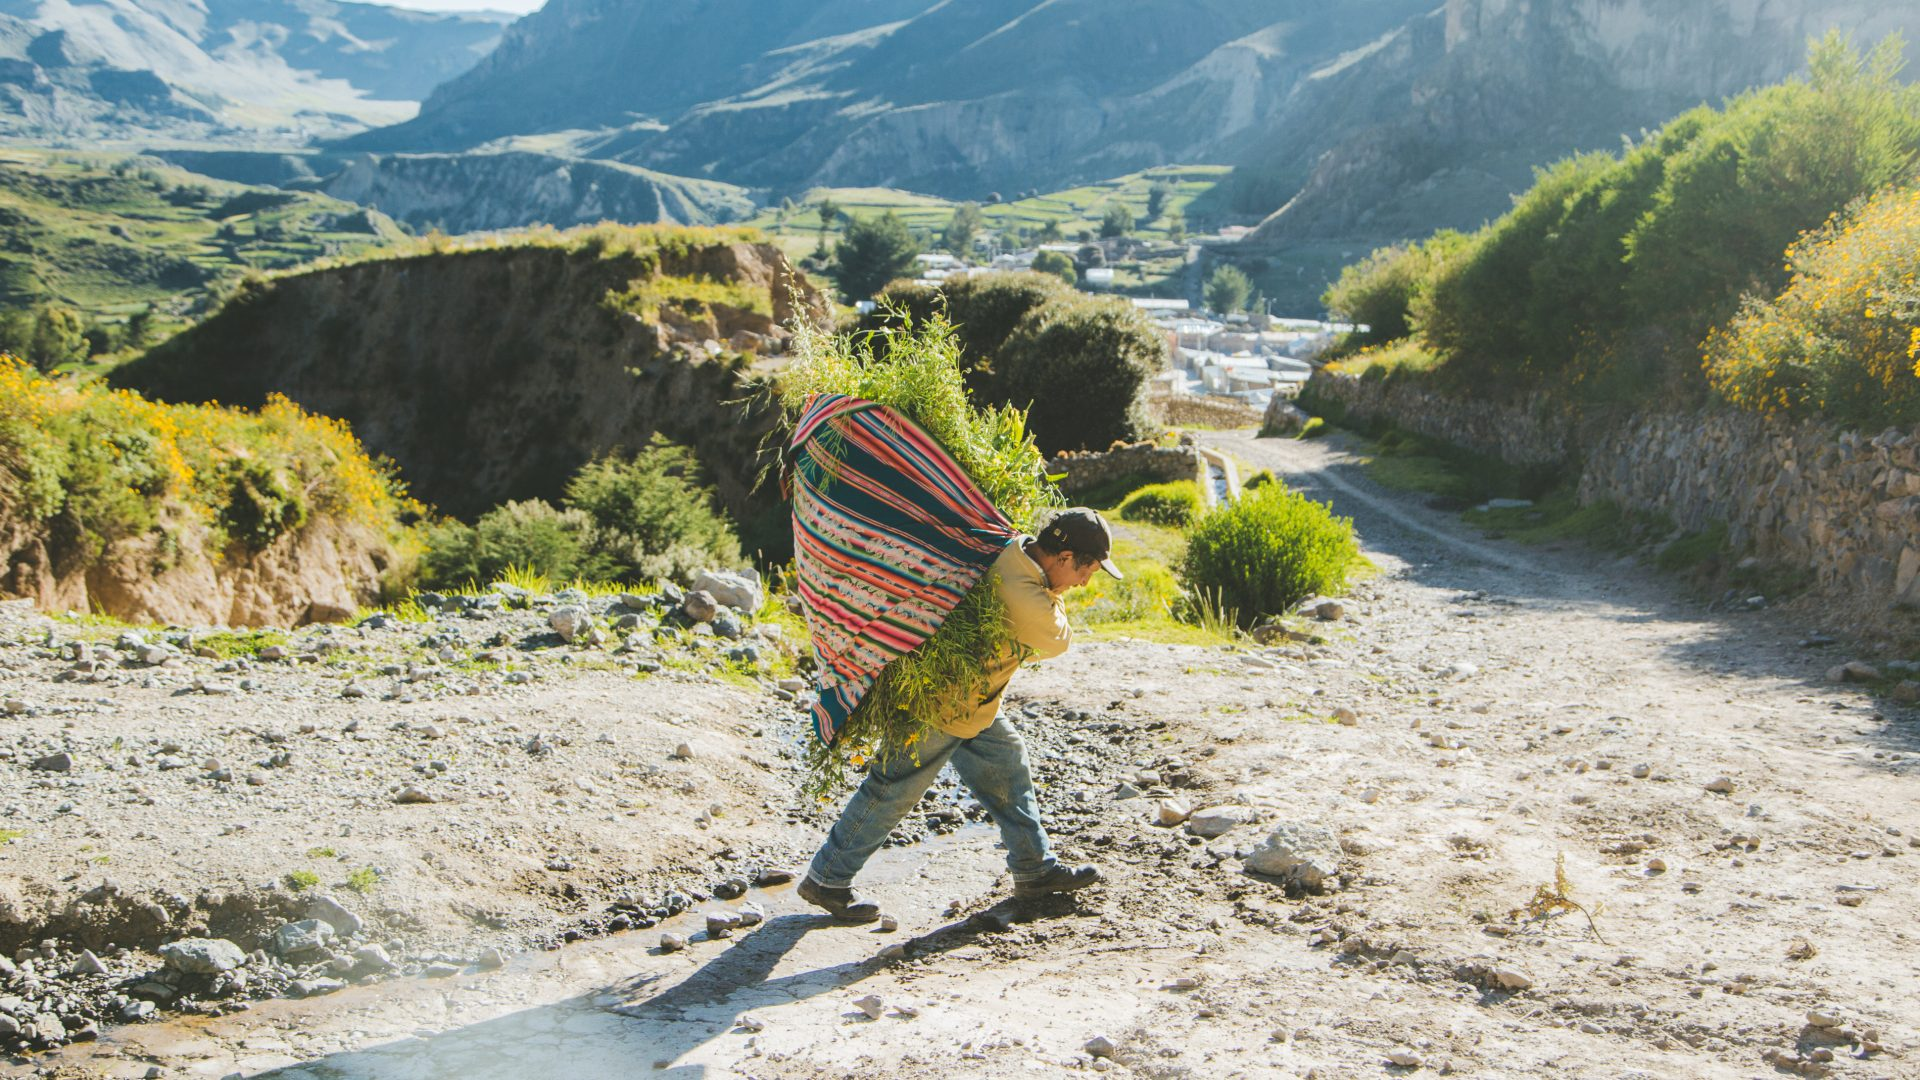 A local carries grasses in a colorful basket on their back in the Colca Canyon in Peru